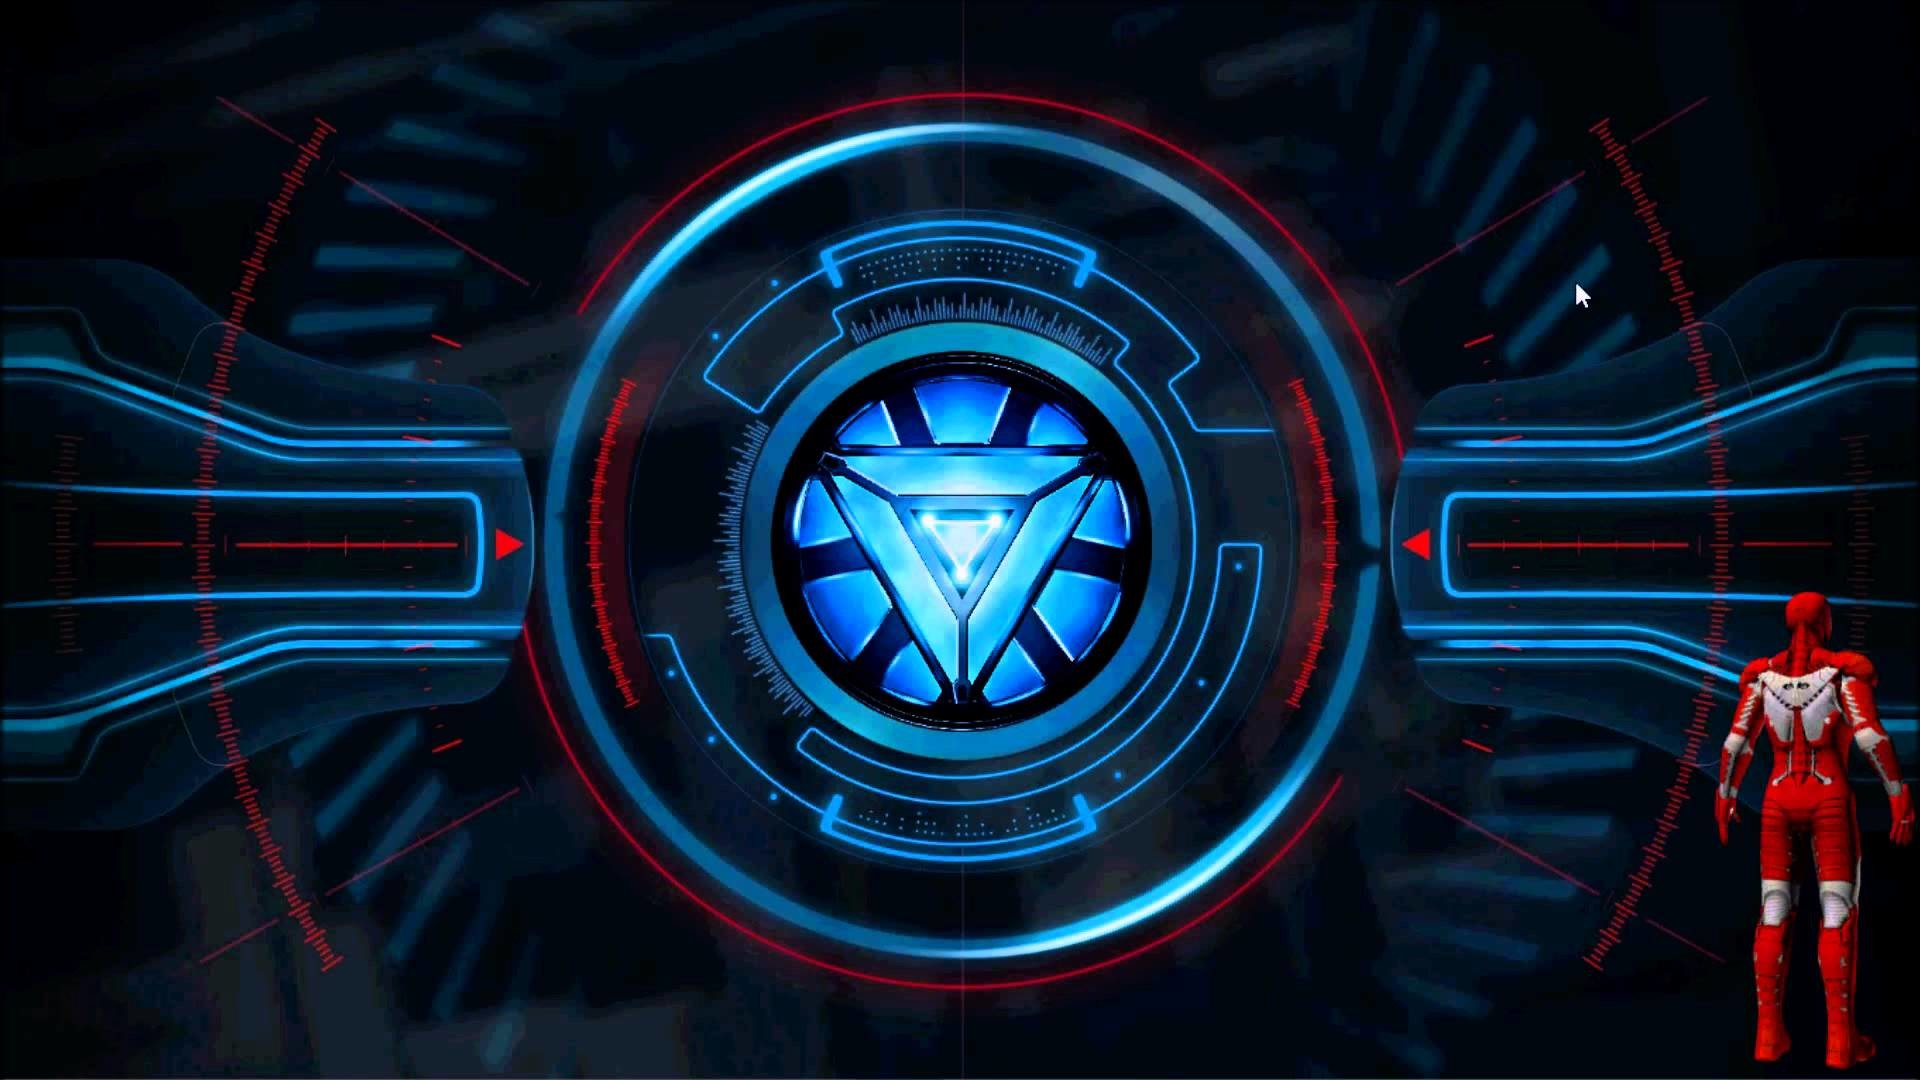 Infinity War Iron Man Arc Reactor Wallpaper